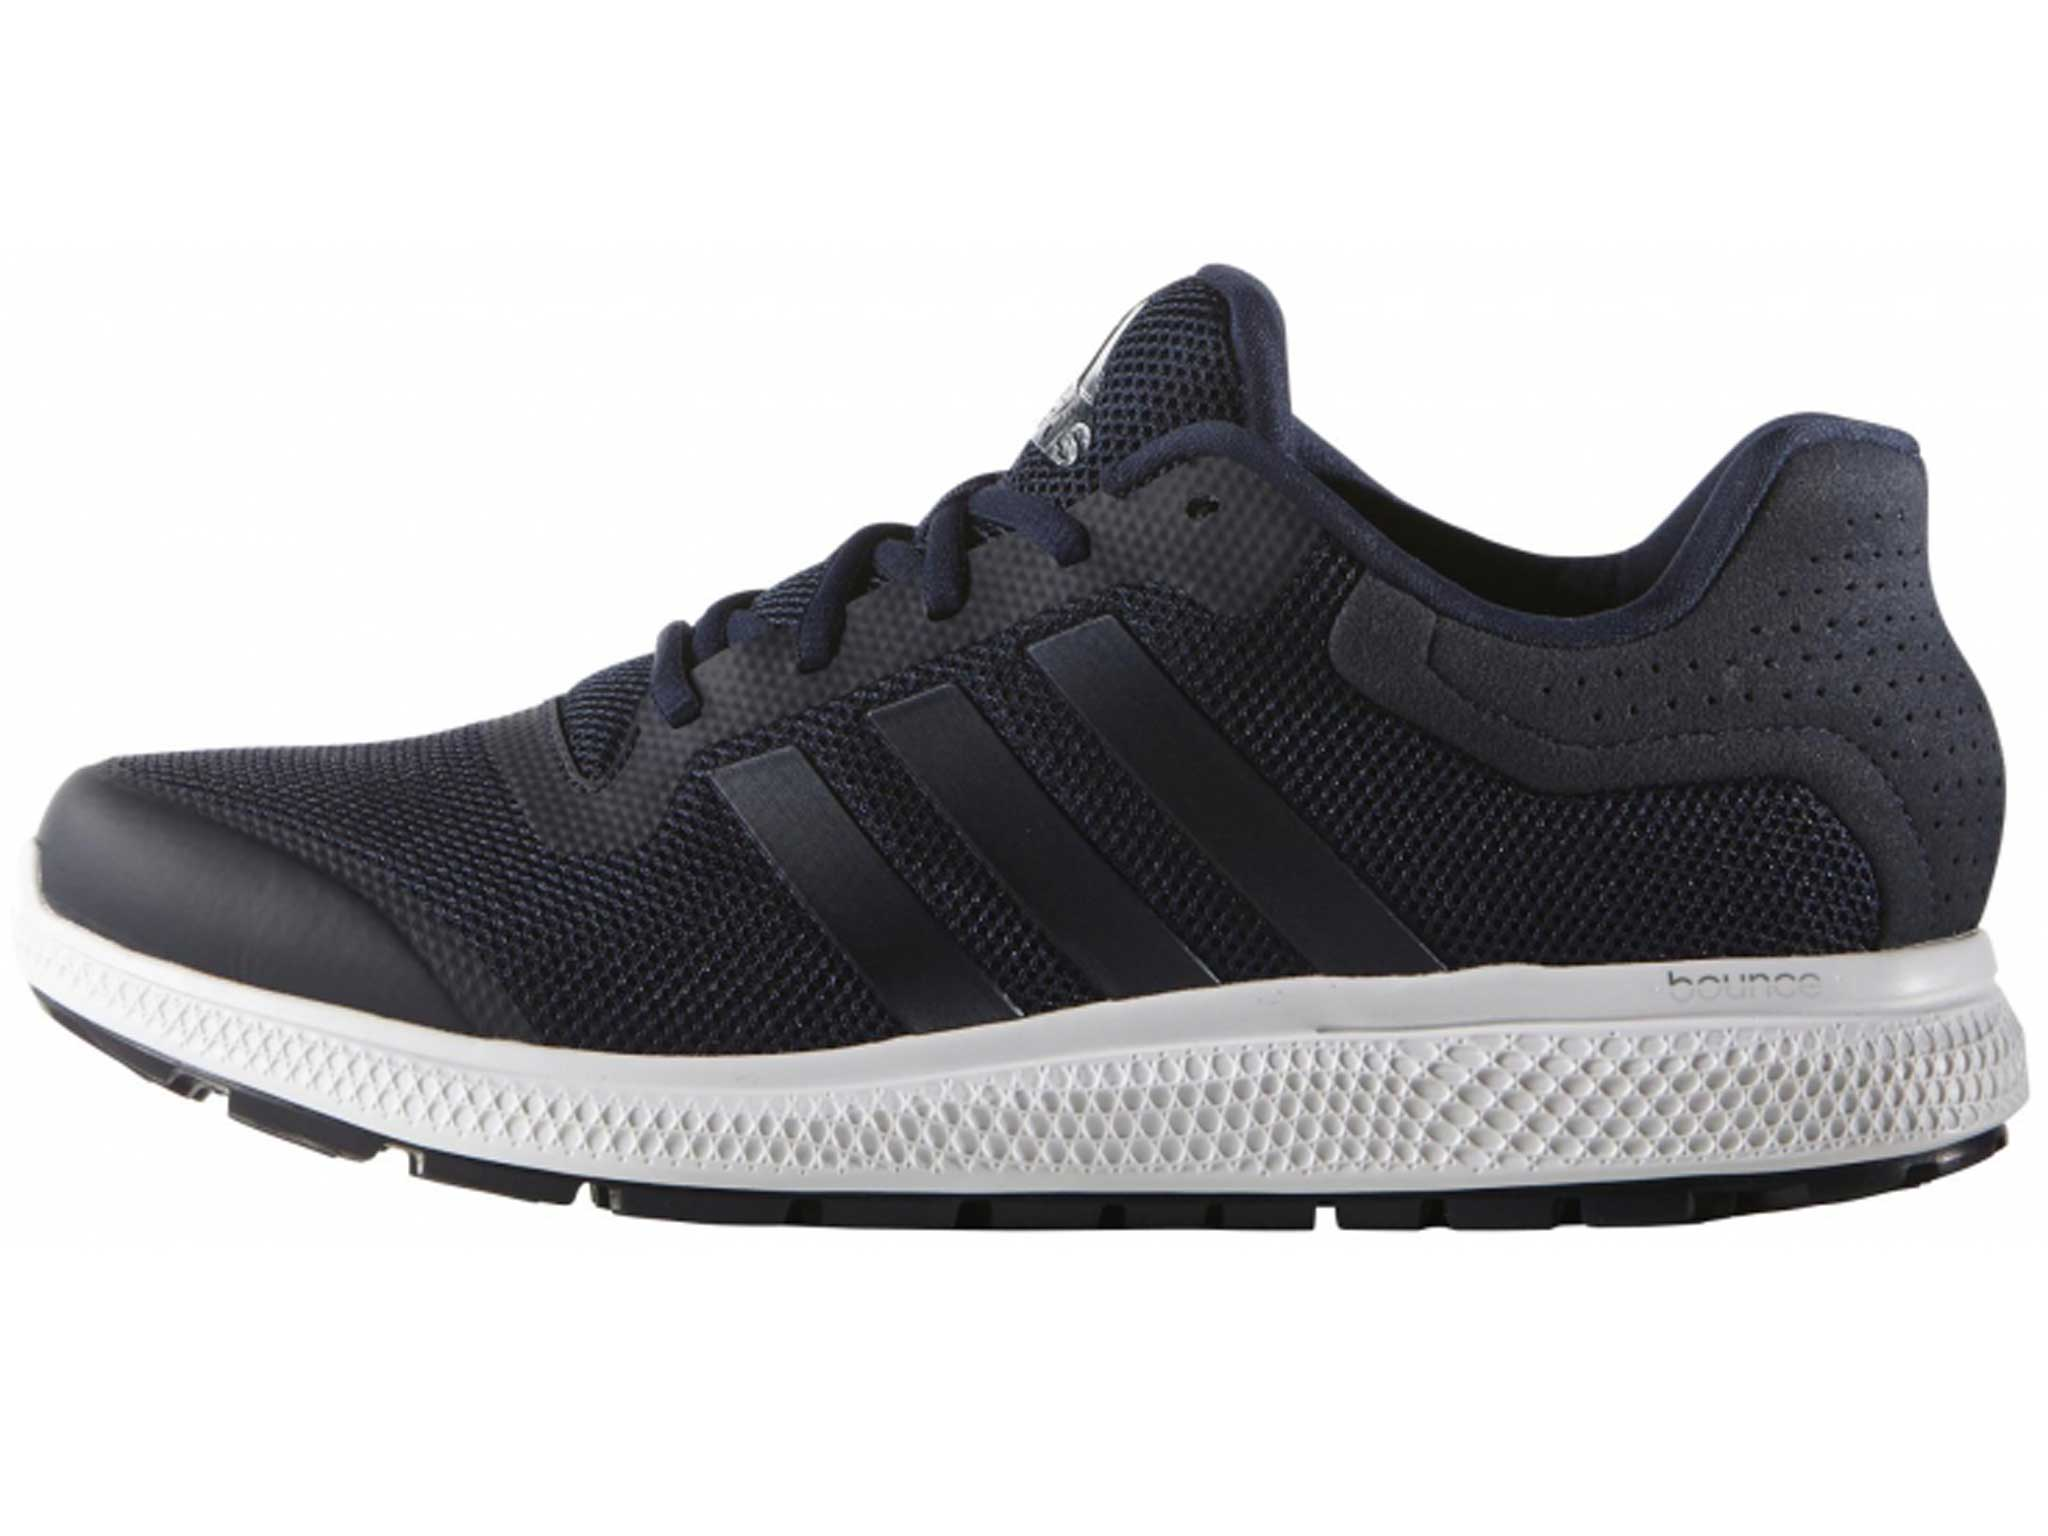 adidas shoes men under 40 pounds